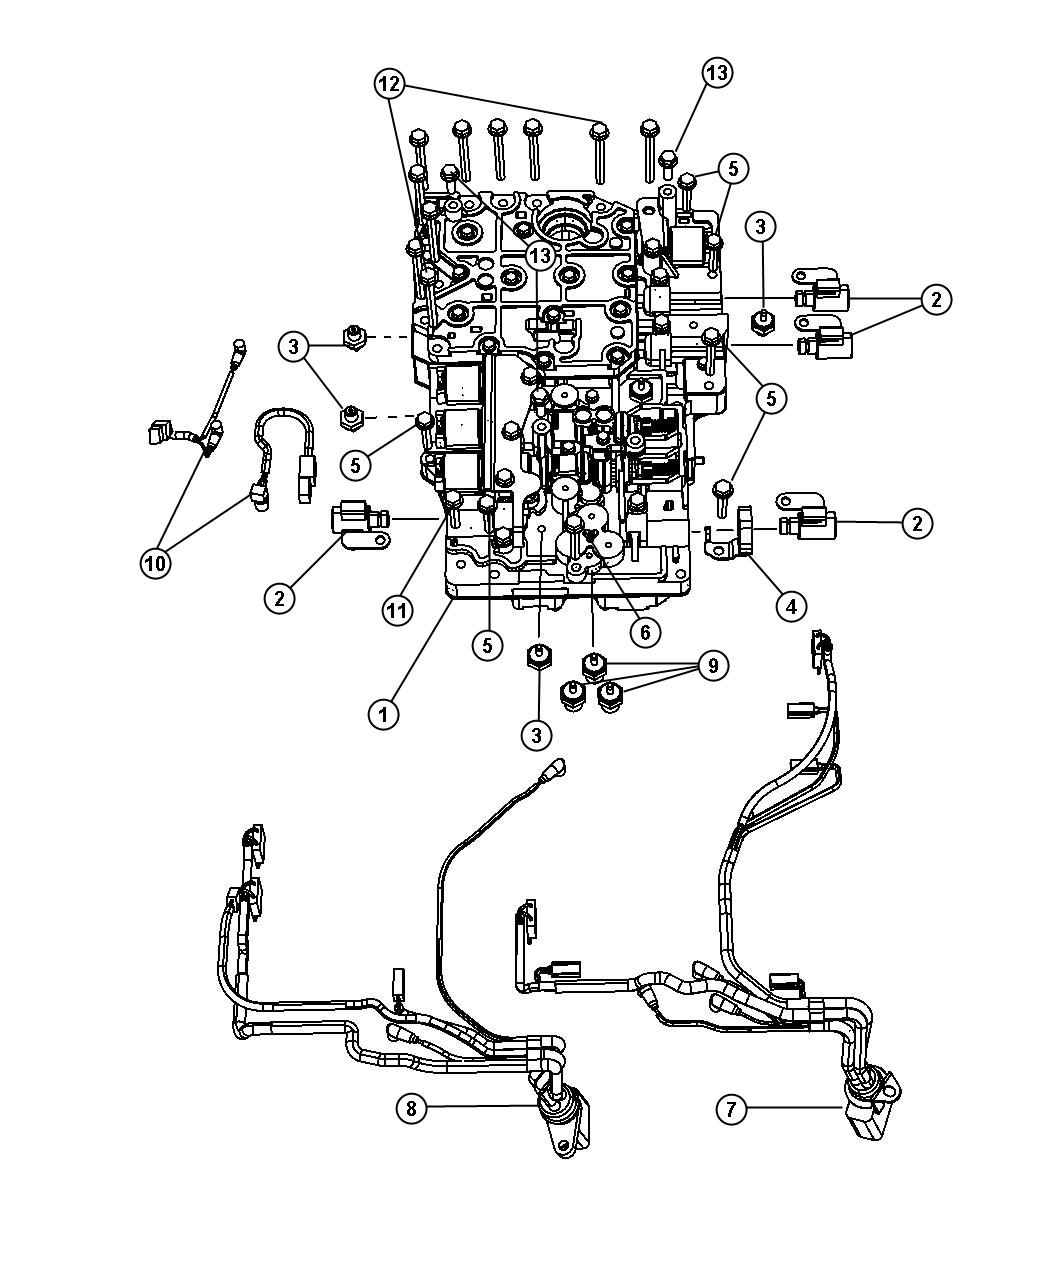 68019703AB - Dodge Harness. Valve body solenoid. Wire to ...